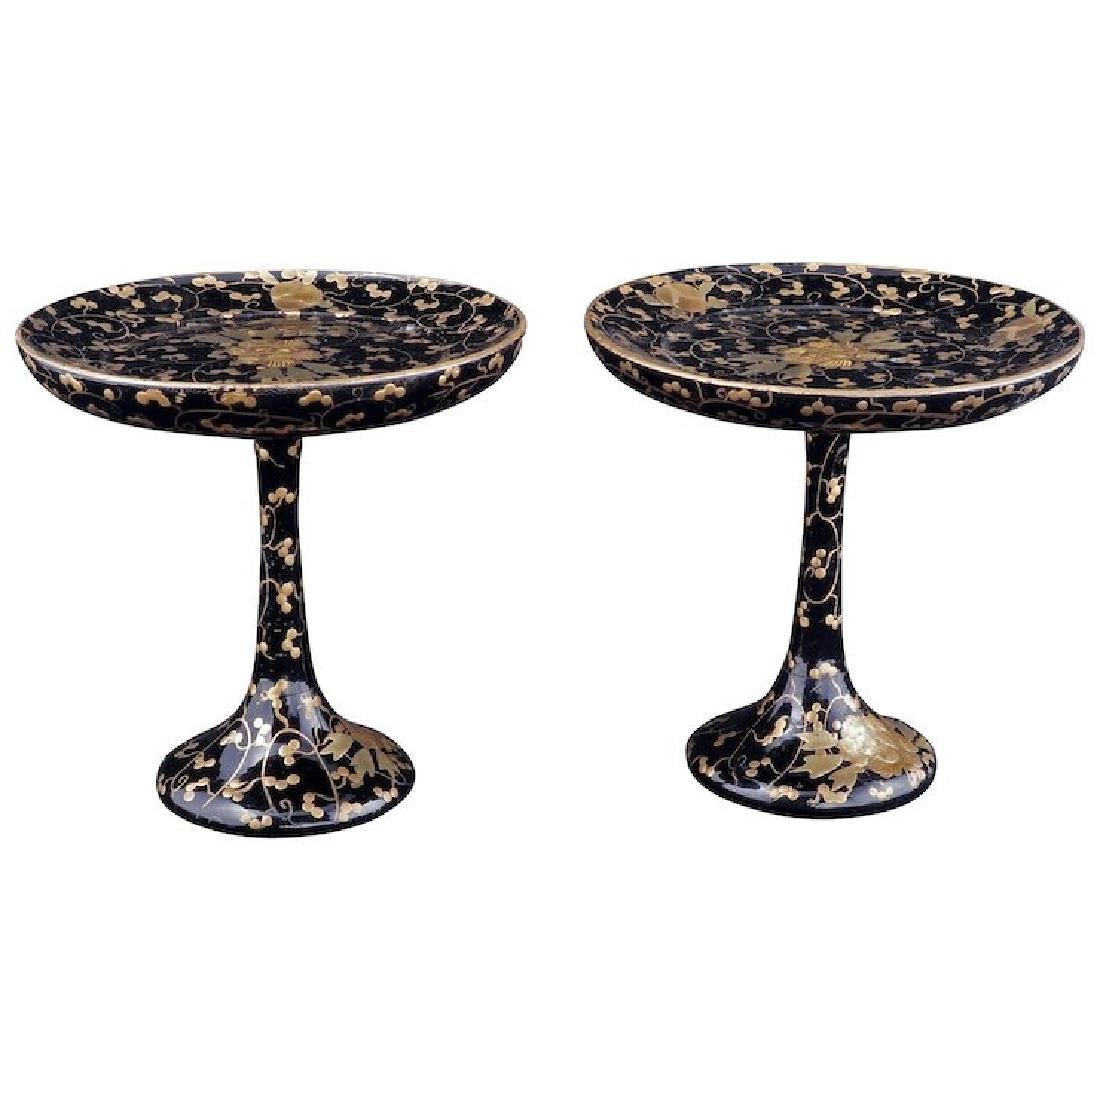 Pair of Japanese lacquered decorative stem cups with